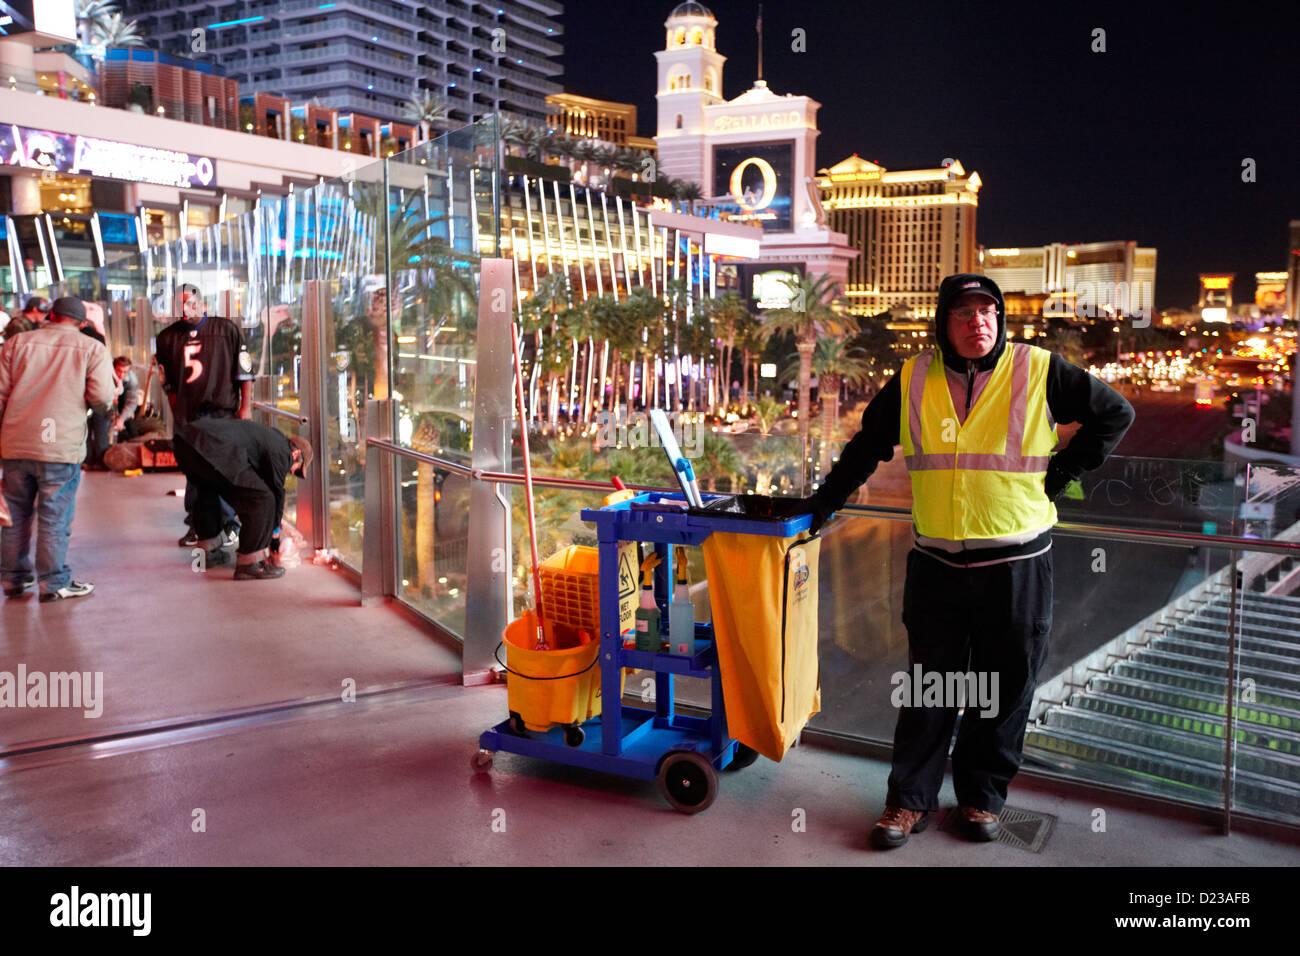 member of street cleaning team standing on overhead walkway las vegas boulevard nevada usa - Stock Image